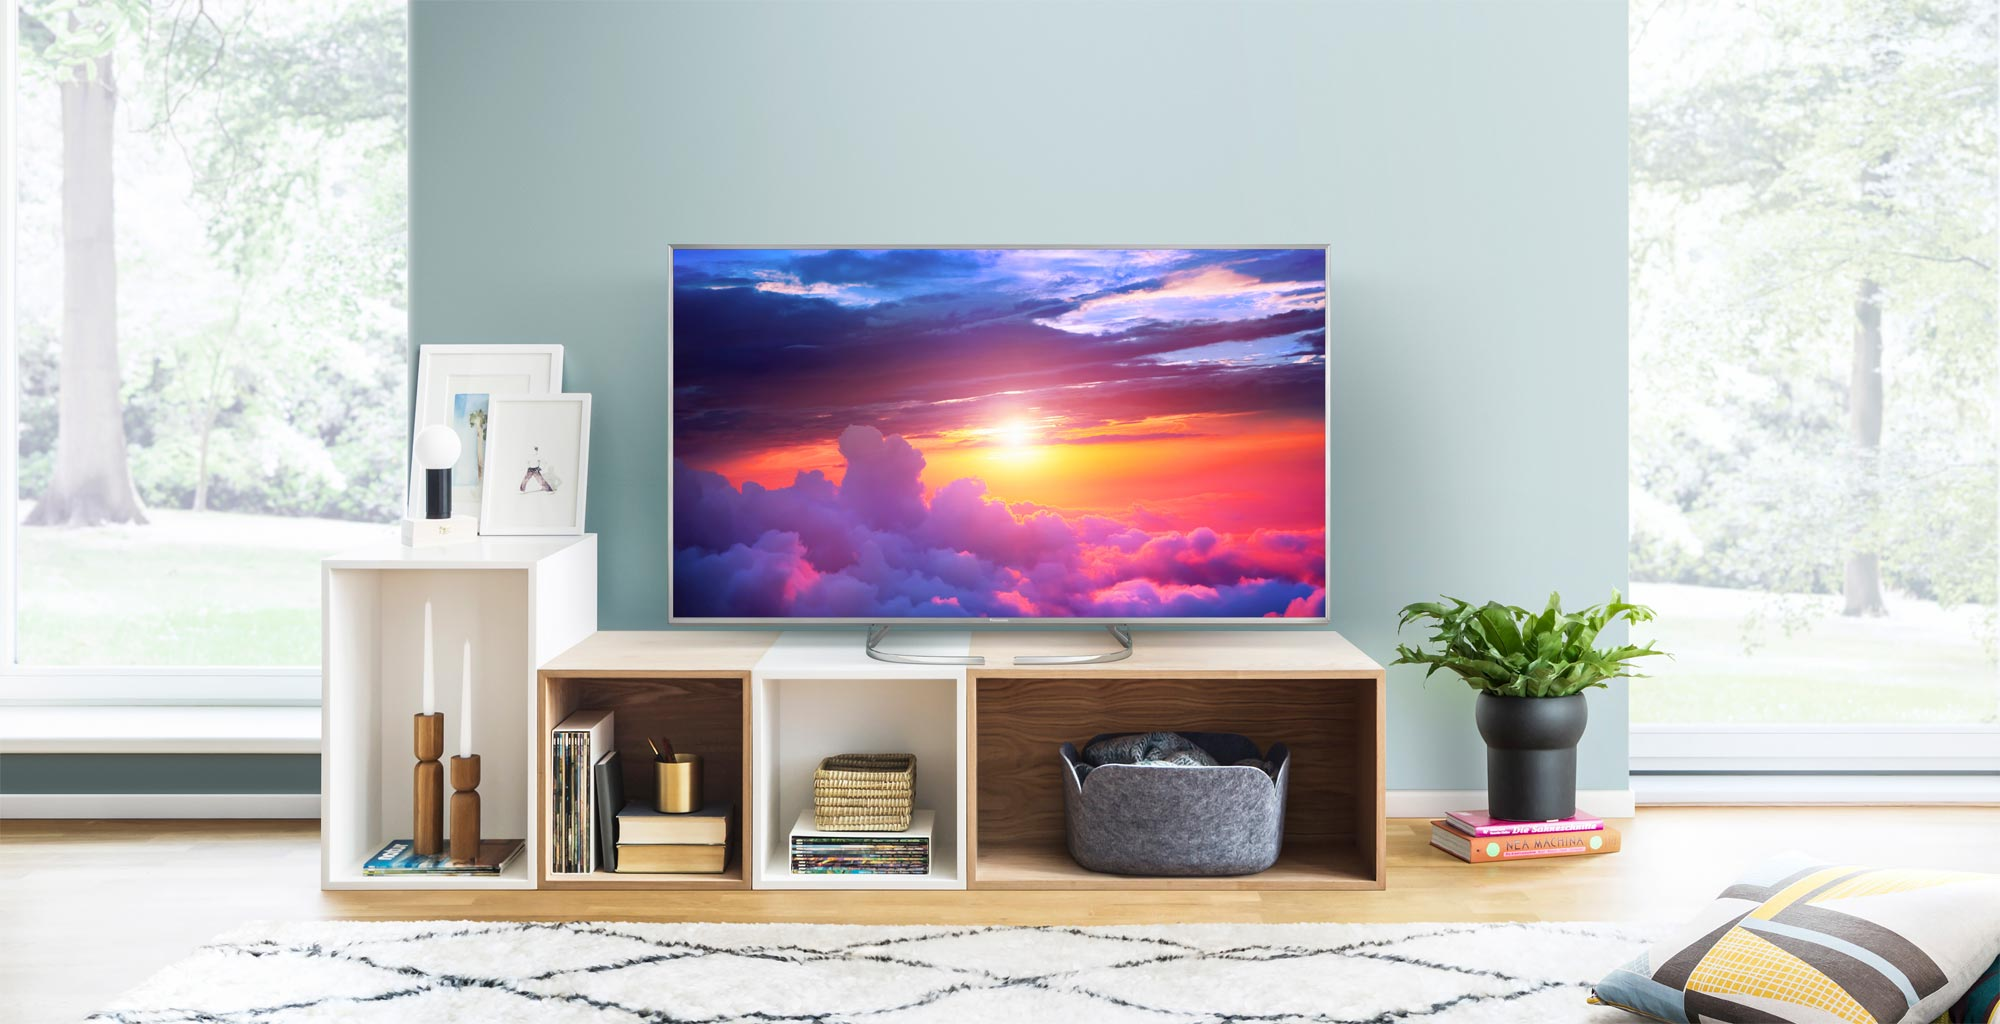 Panasonic EX700 review - FlatpanelsHD